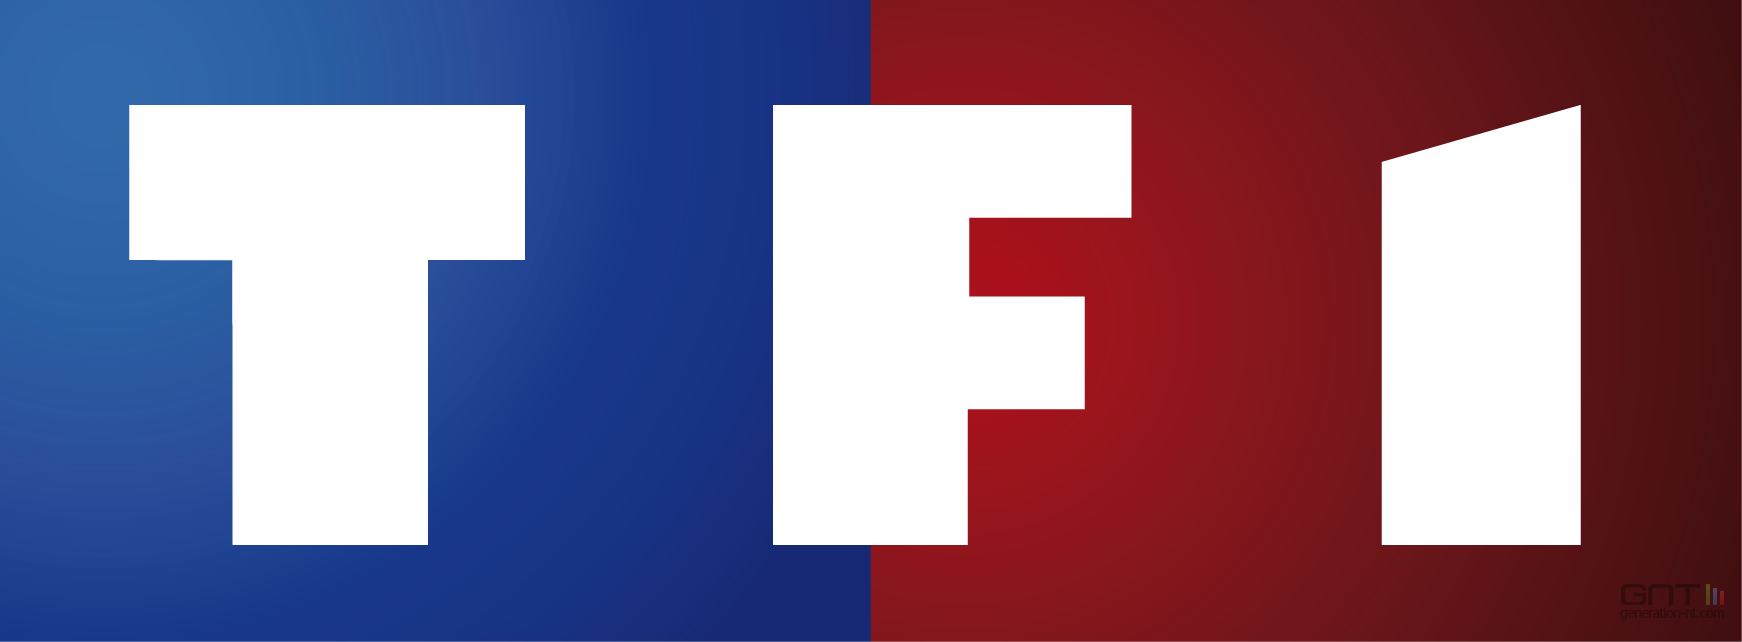 tf1-logo Dailymotion